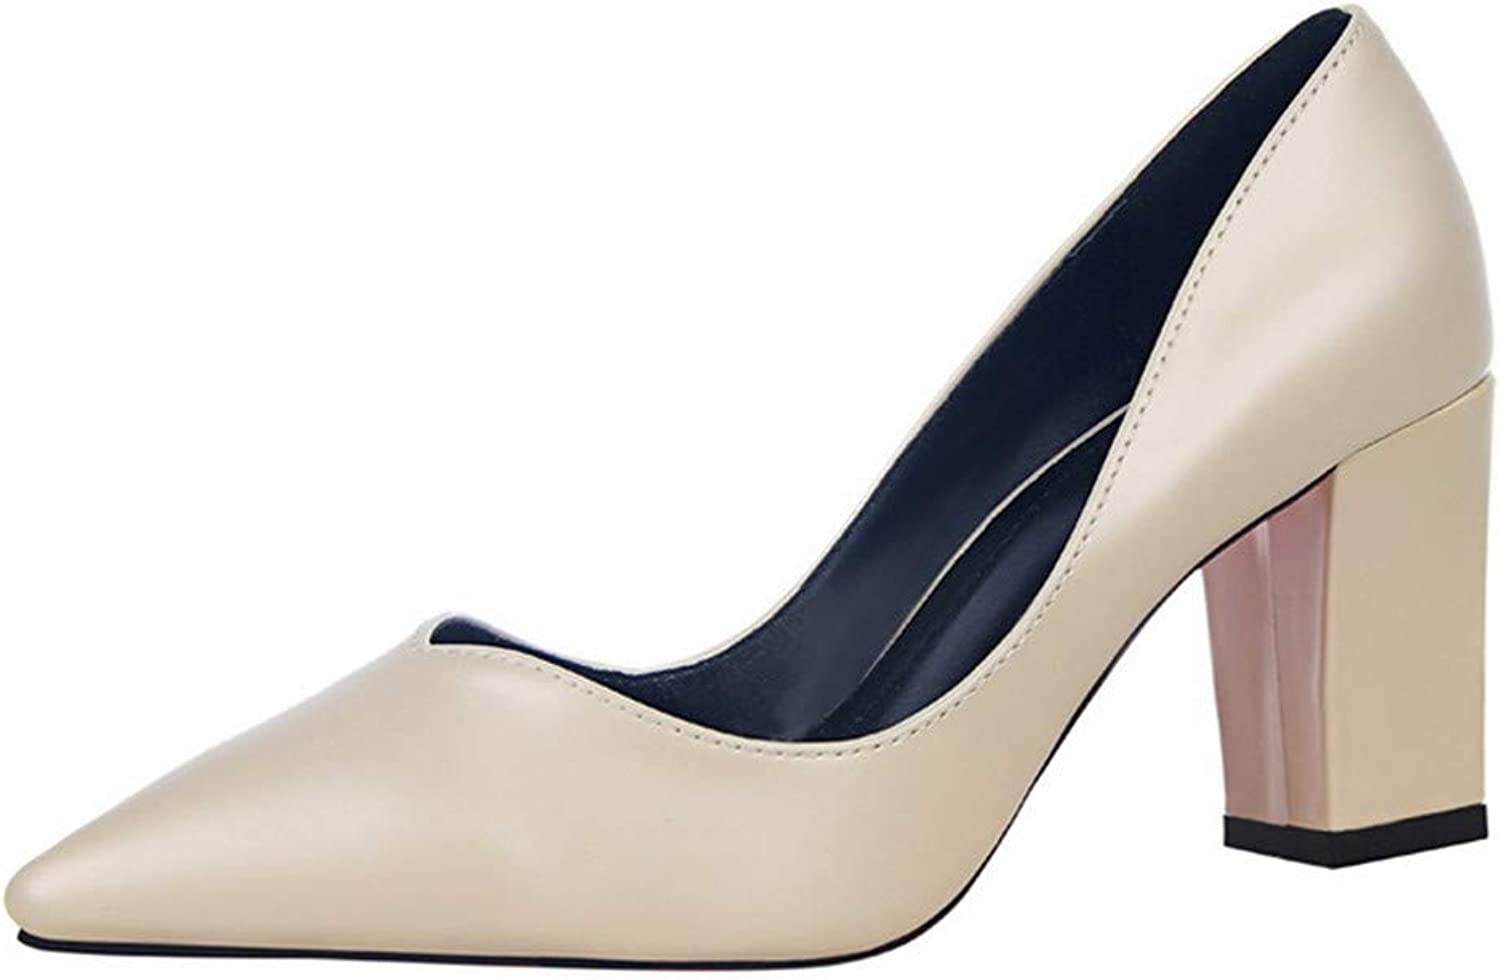 LLBubble Block Heels Pointed Toe Women Pumps Formal Party Dress shoes